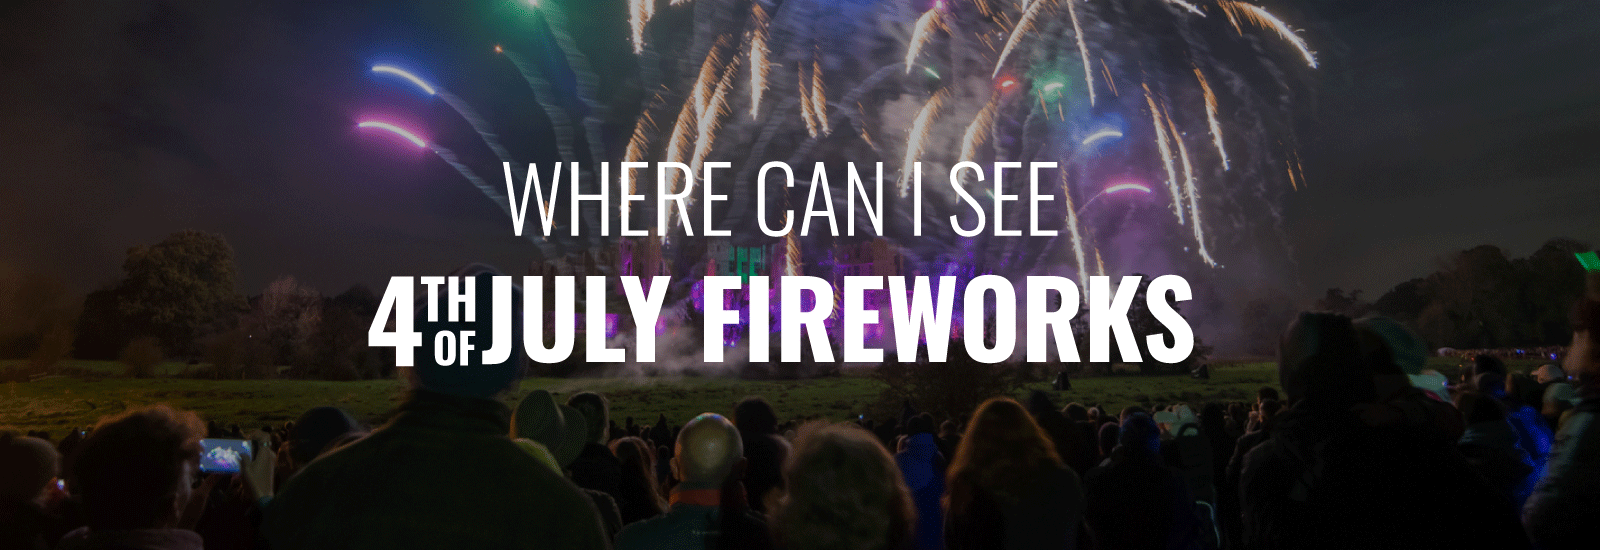 Where Can I See the 4th of July Fireworks?